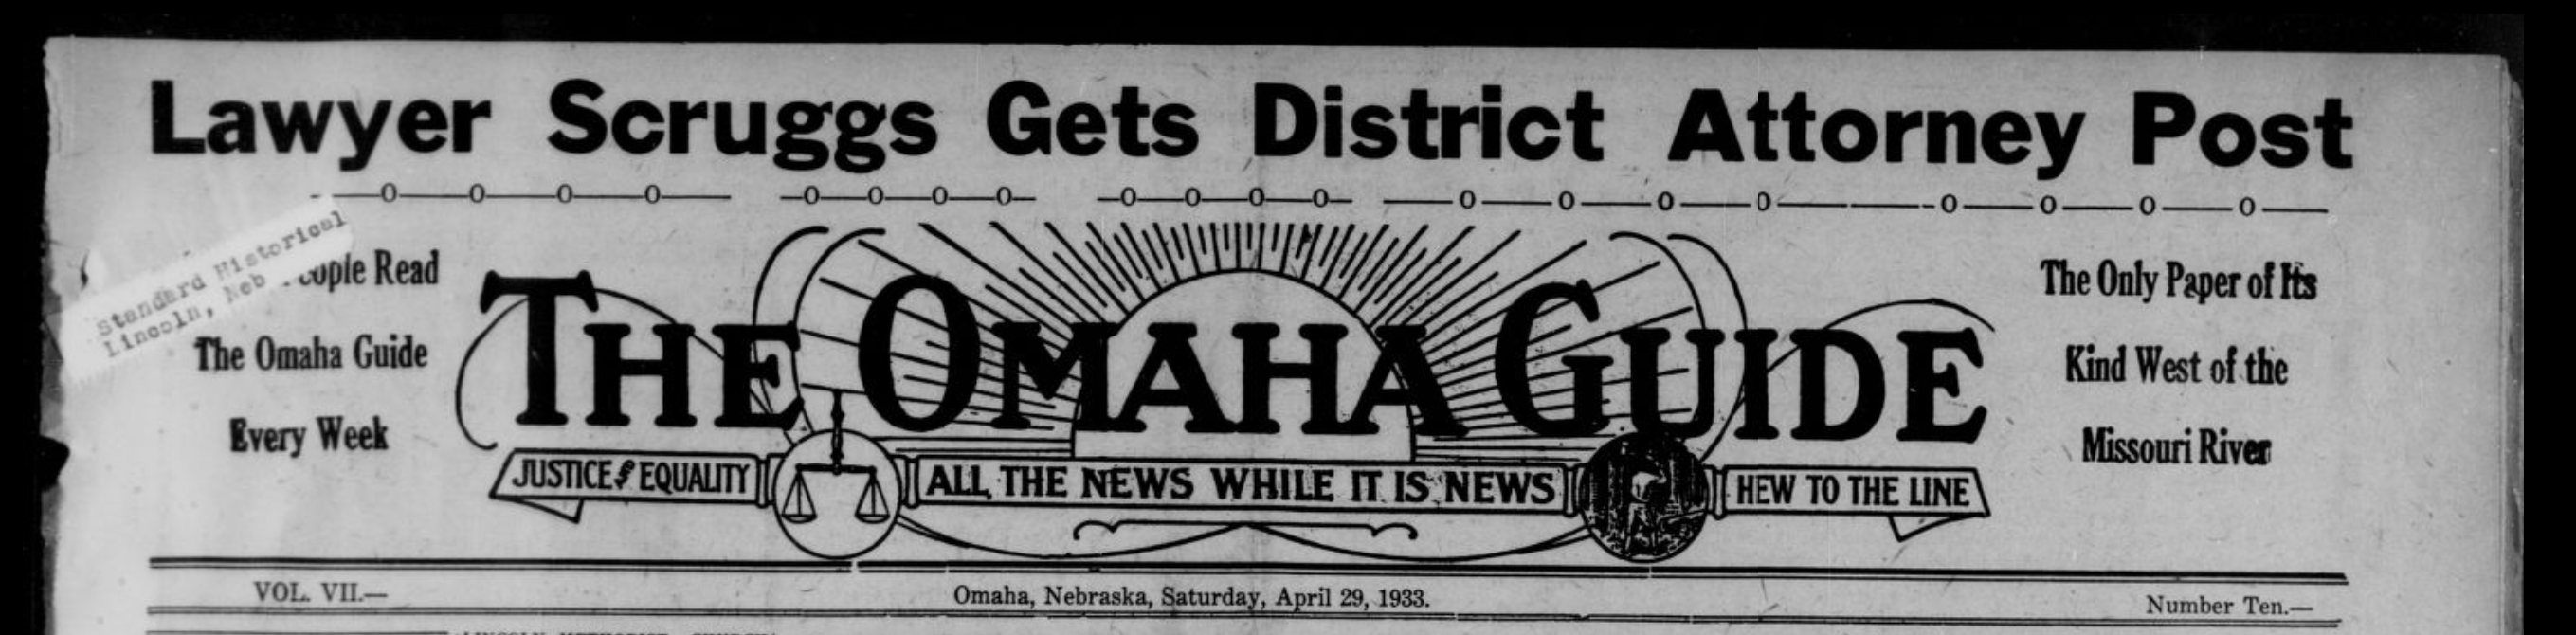 April 29, 1933 banner The Omaha Guide